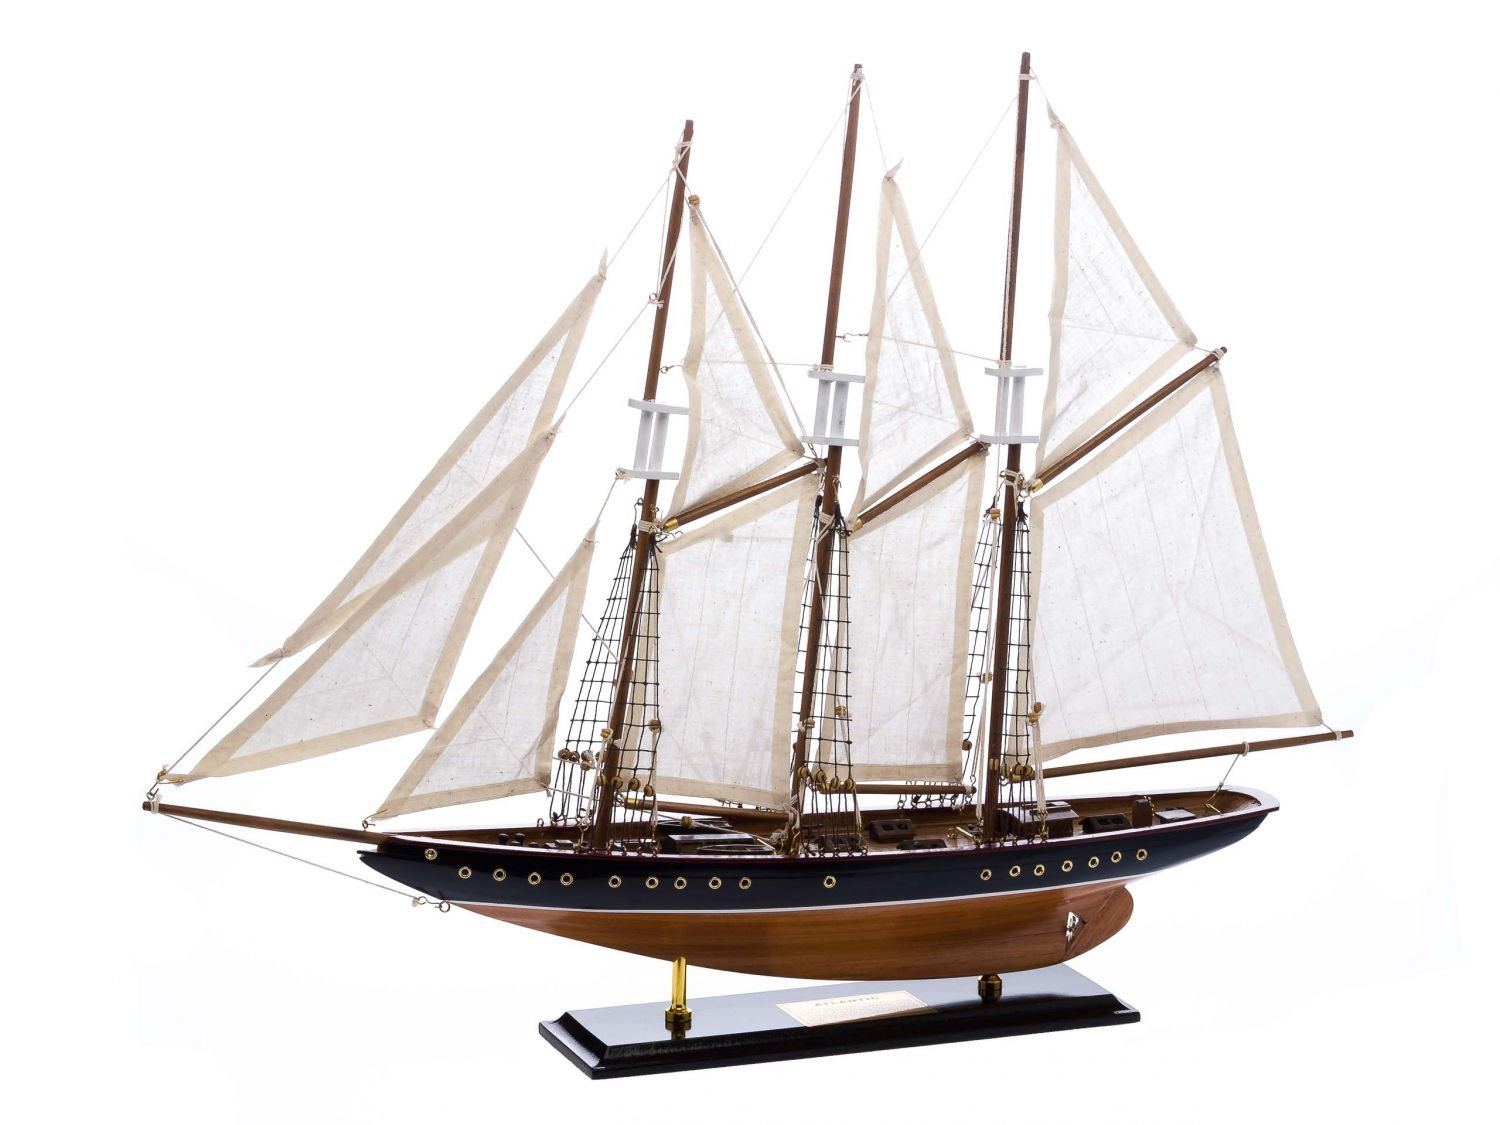 Atlantic model ship - three-masted schooner - wood and fabric sails - 2'4